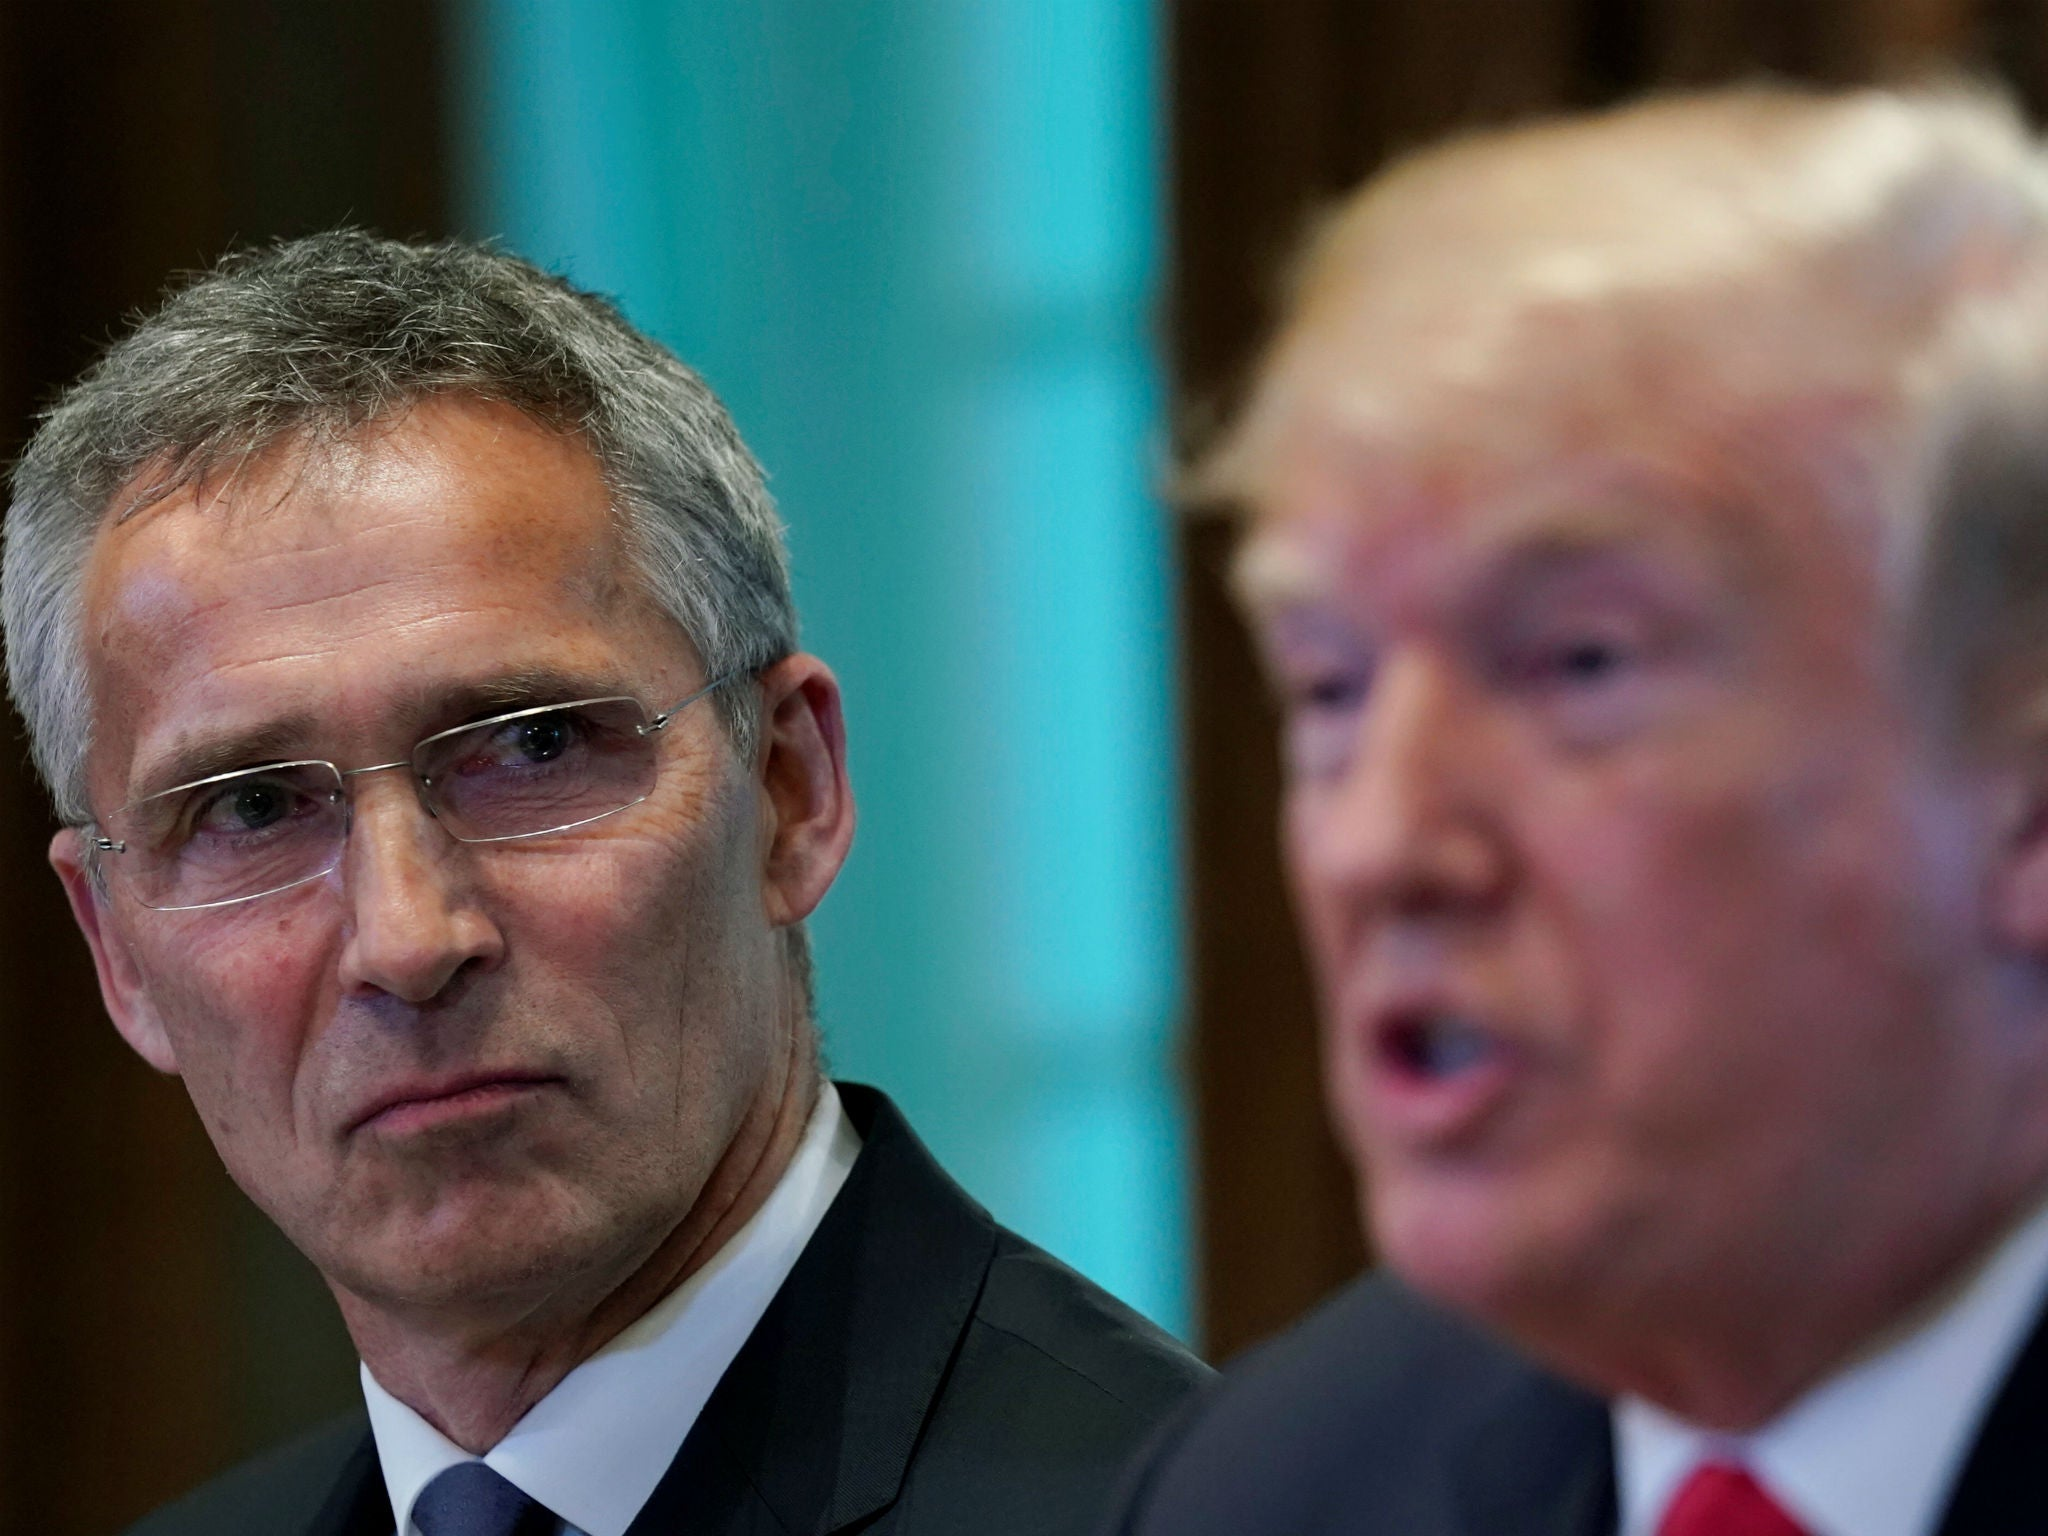 Donald Trump warns Nato members will be 'dealt with' if they refuse to pay more for military alliance